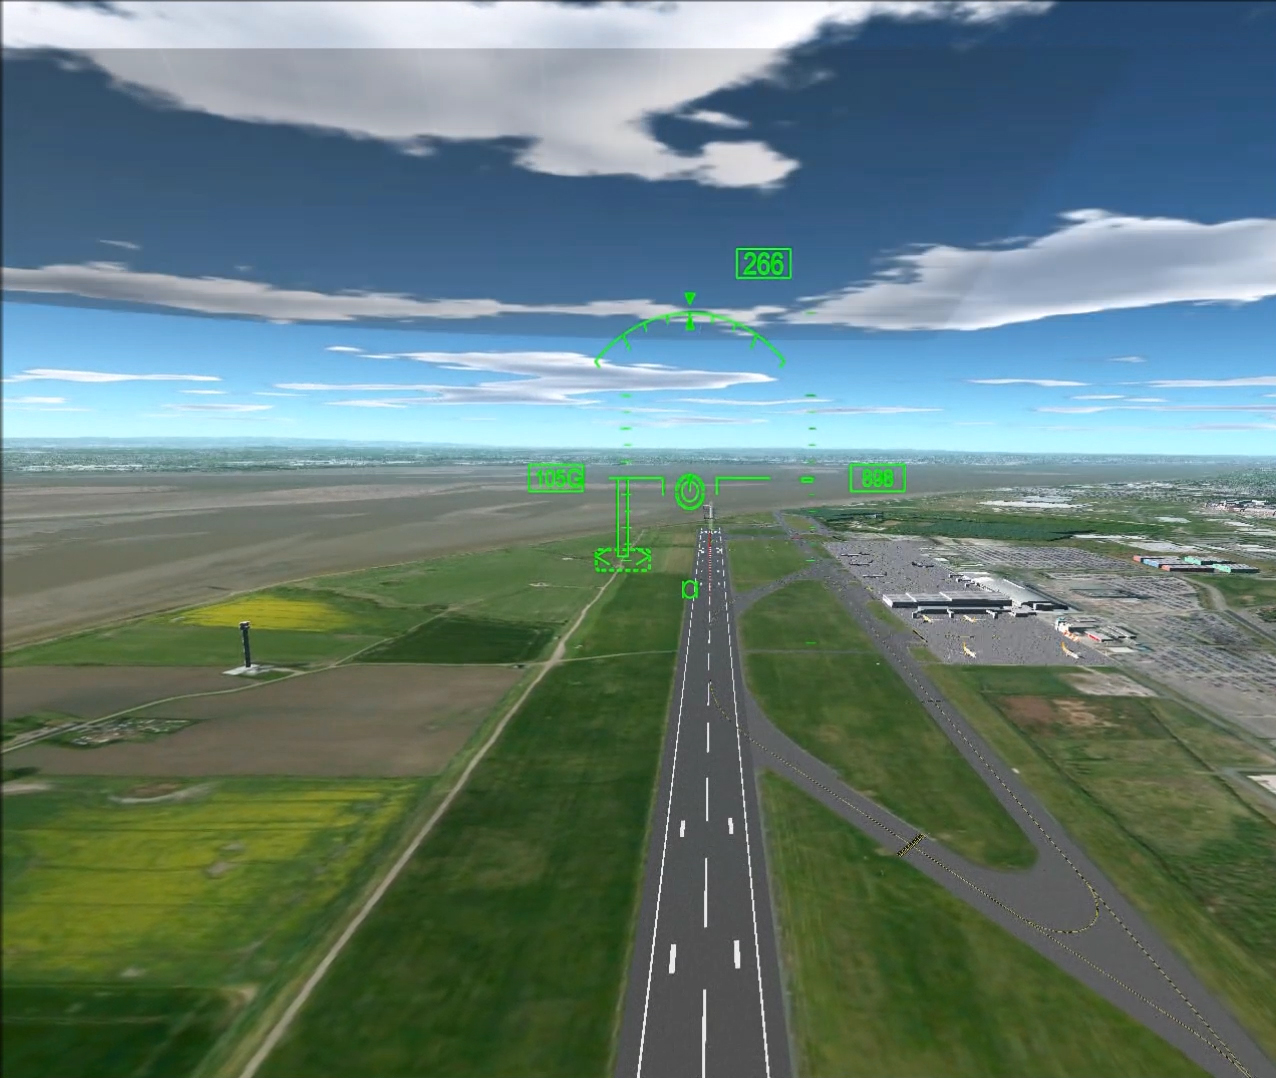 Coming down in a simulated autorotation into Liverpool John Lennon International Airport with guidance symbology on